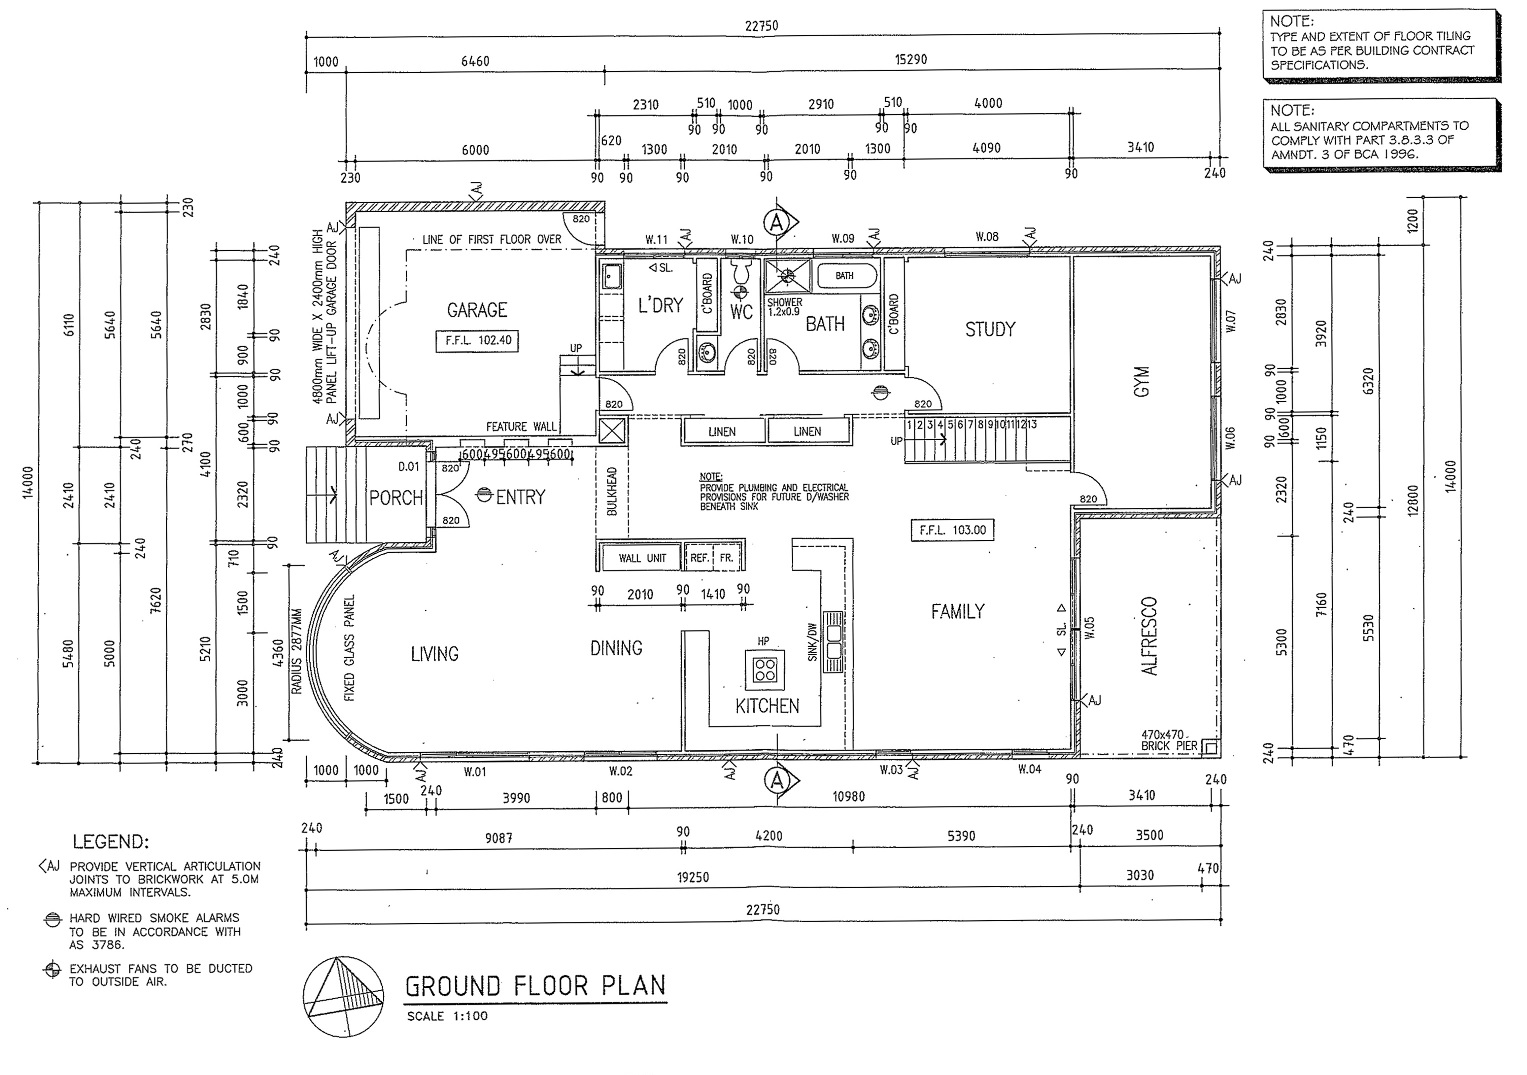 Wedding Floor Plan Design Wedding Floor Plan Design With Design in addition Template Pie Chart Analyse in addition Air Force Two Interior further VD 20  20Penn 20Station 203 additionally Floor Plan 3d Free. on office floor plan creator